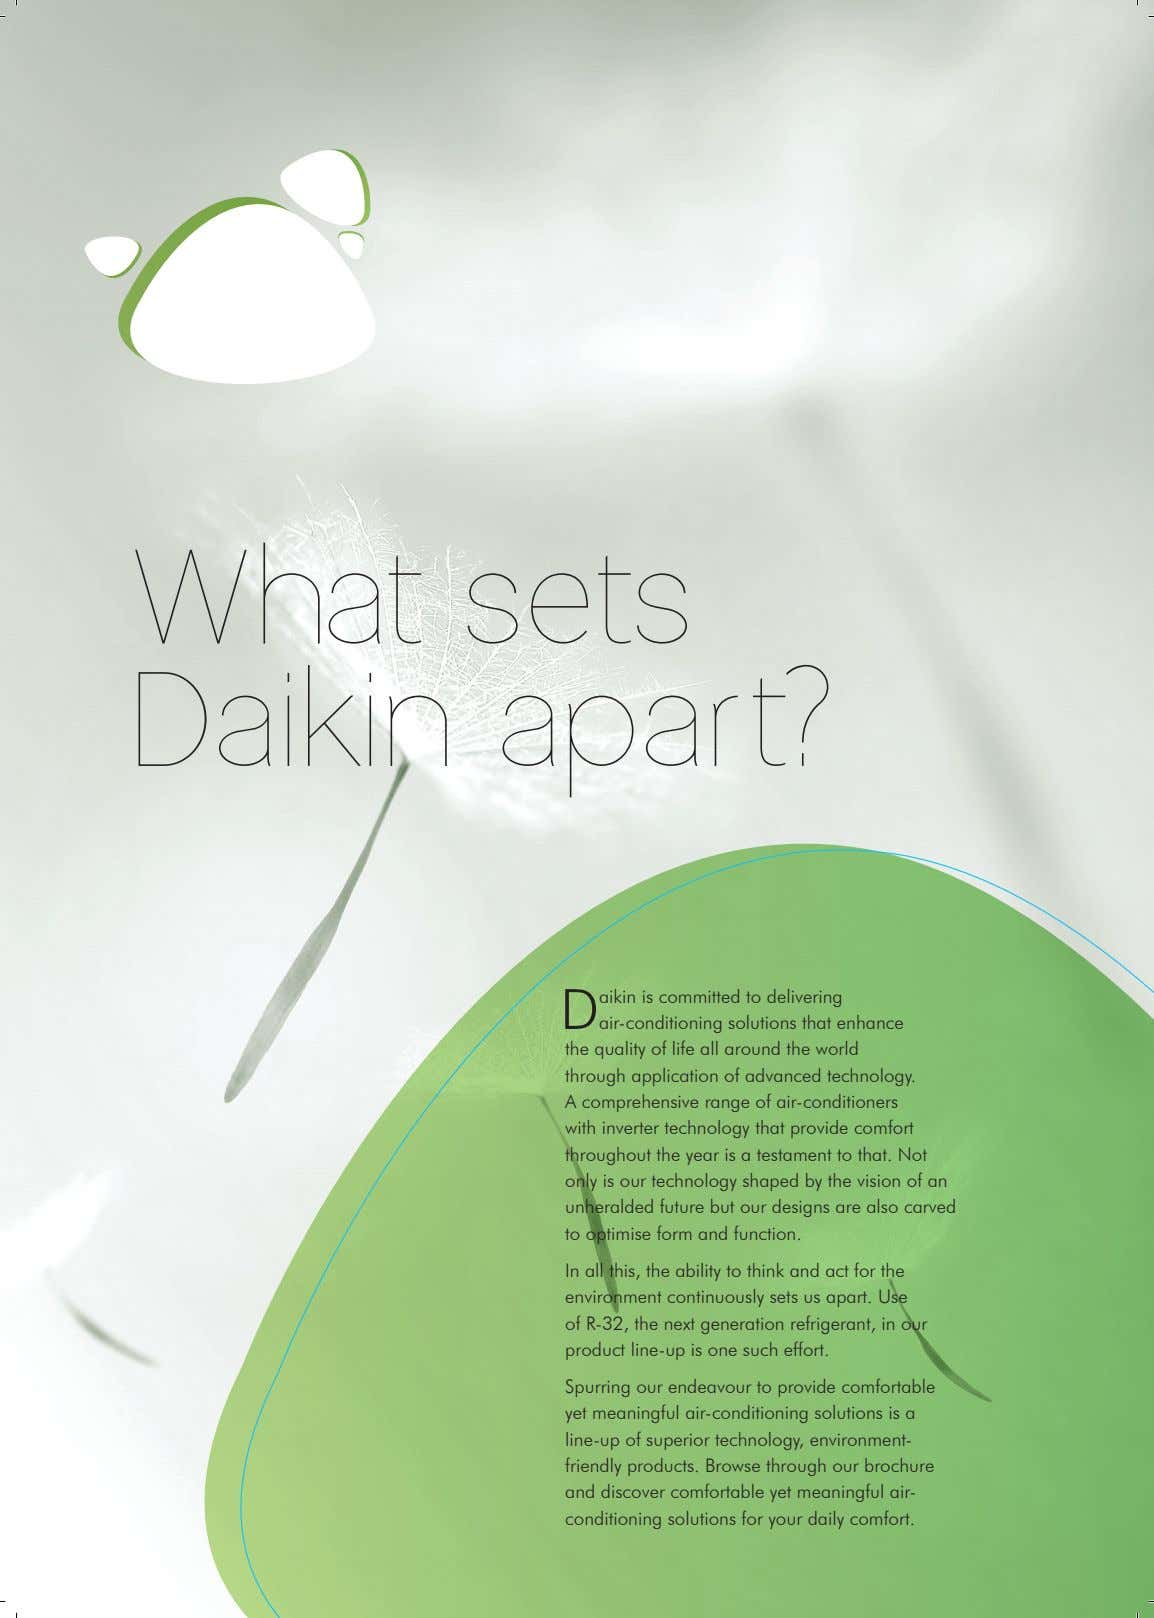 What sets Daikin apart? d aikin is committed to delivering air-conditioning solutions that enhance the